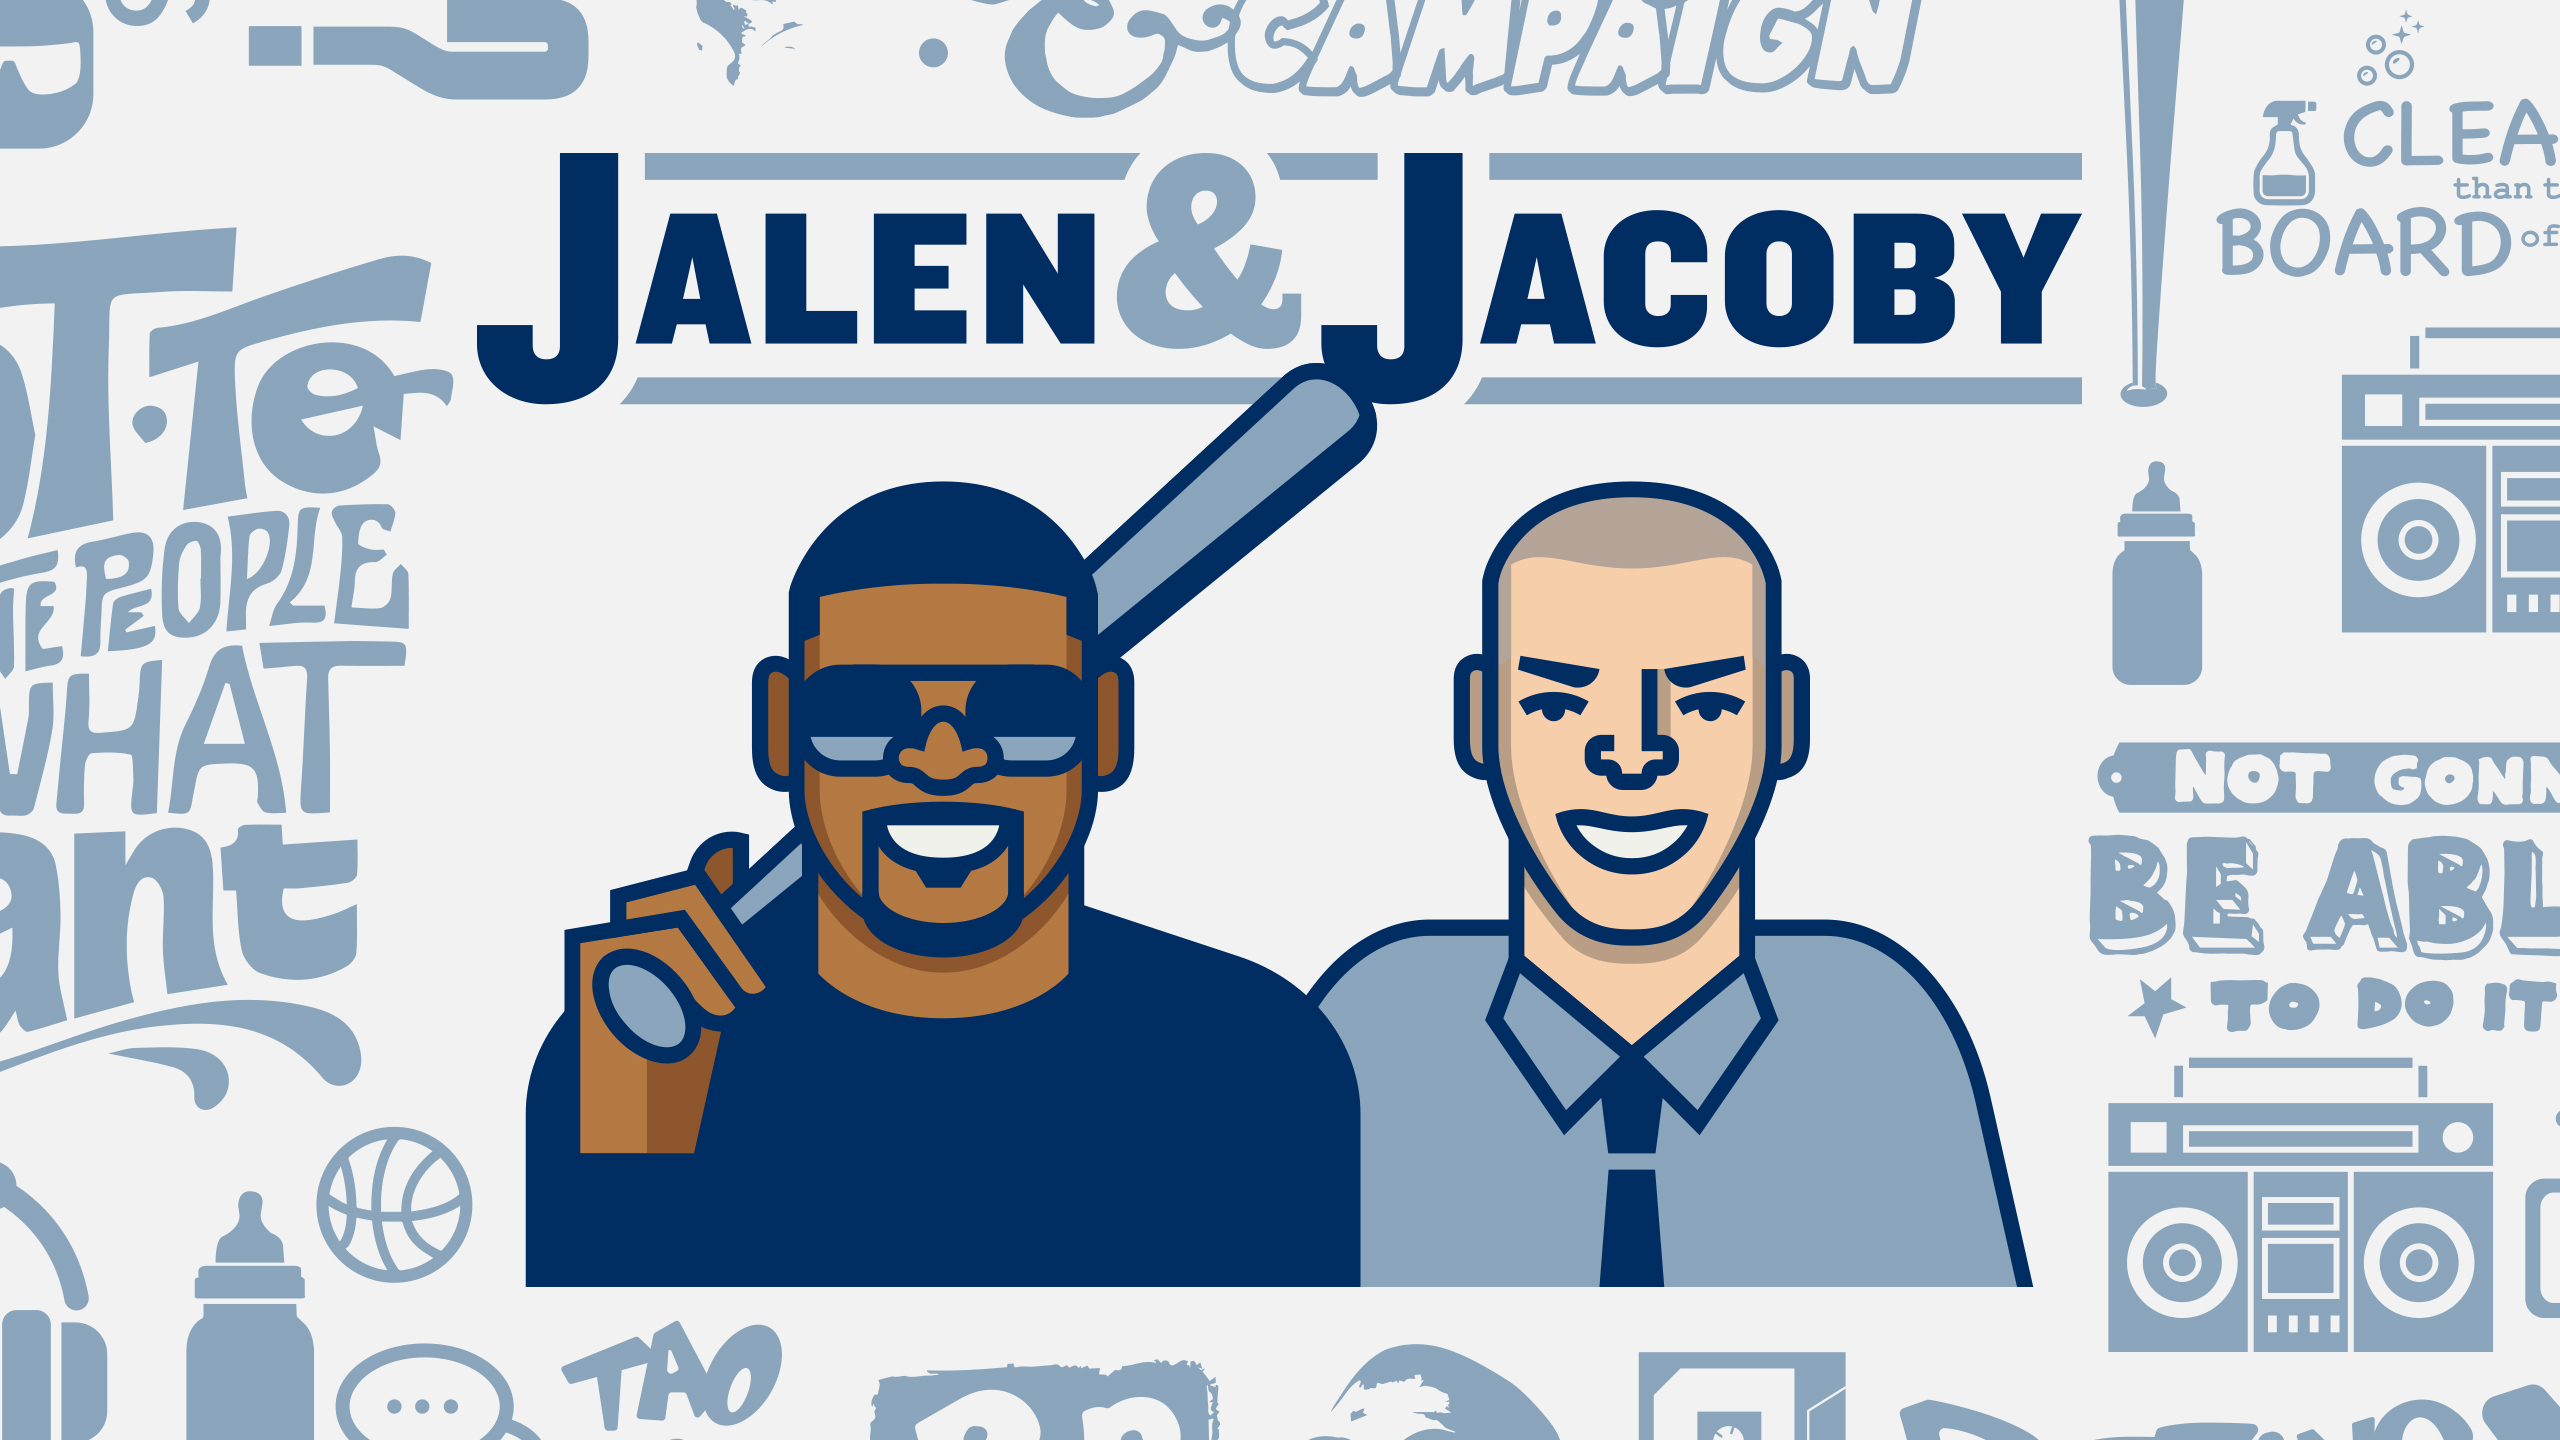 Fri, 12/14 - Jalen & Jacoby